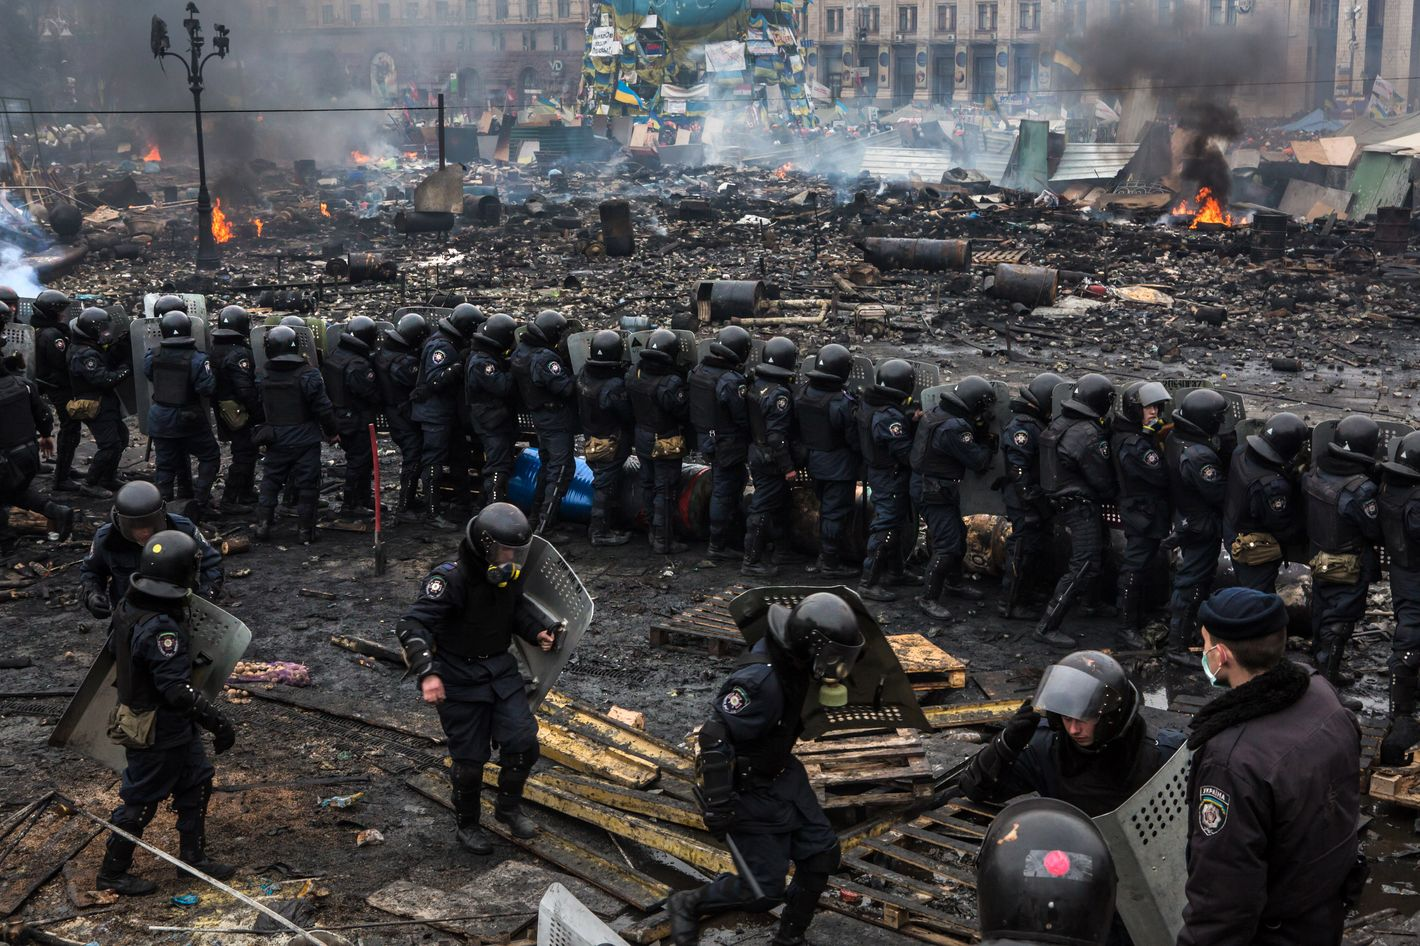 KIEV, UKRAINE - FEBRUARY 19: Police form a barrier in Independence Square on February 19, 2014 in Kiev, Ukraine. After several weeks of calm, violence has again flared between anti-government protesters and police as the Ukrainian parliament is meant to take up the question of whether to revert to the country's 2004 constitution. (Photo by Brendan Hoffman/Getty Images)